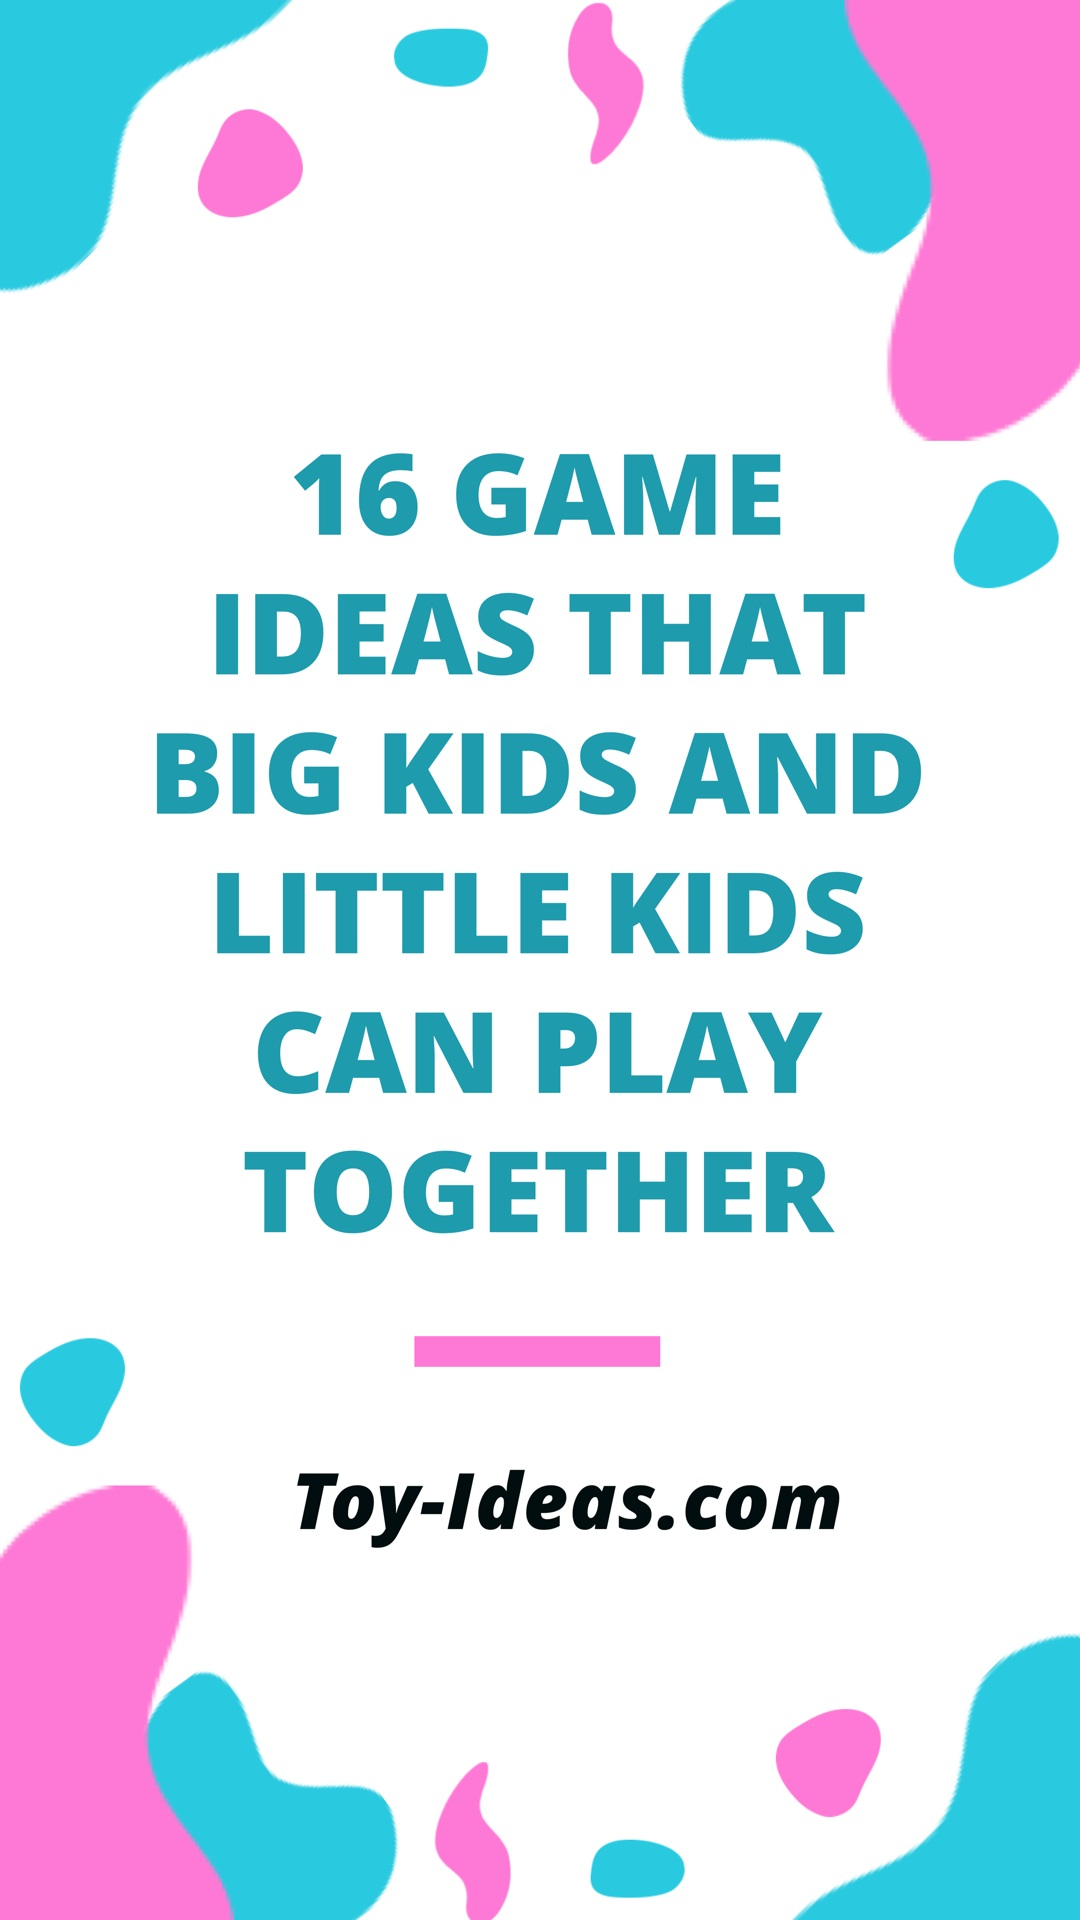 Toys that big kids and little kids can play together.jpg